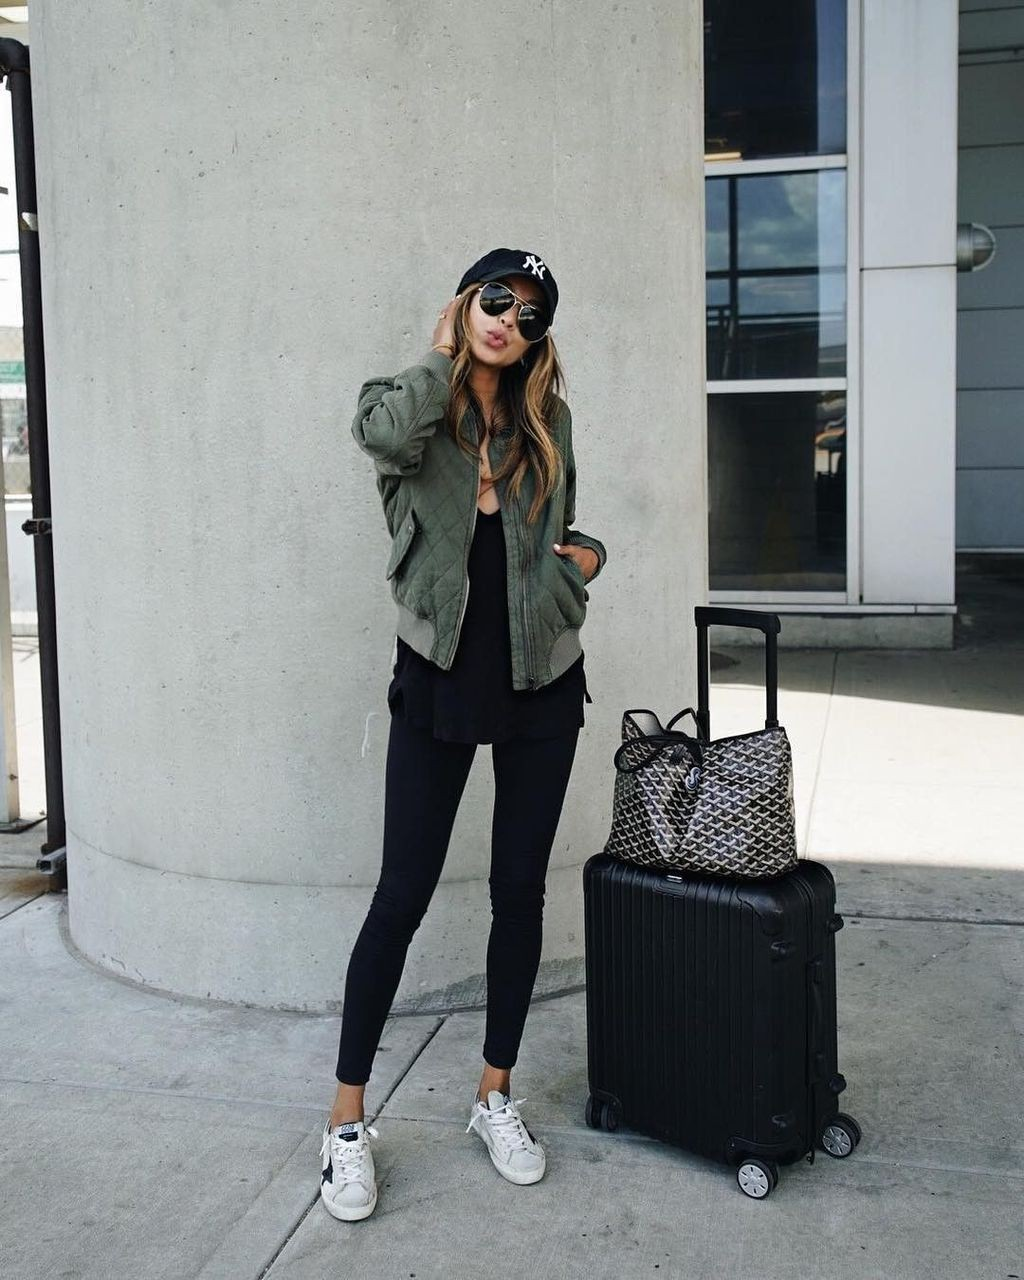 Colour outfit ideas 2020 airport outfits ideas, street fashion